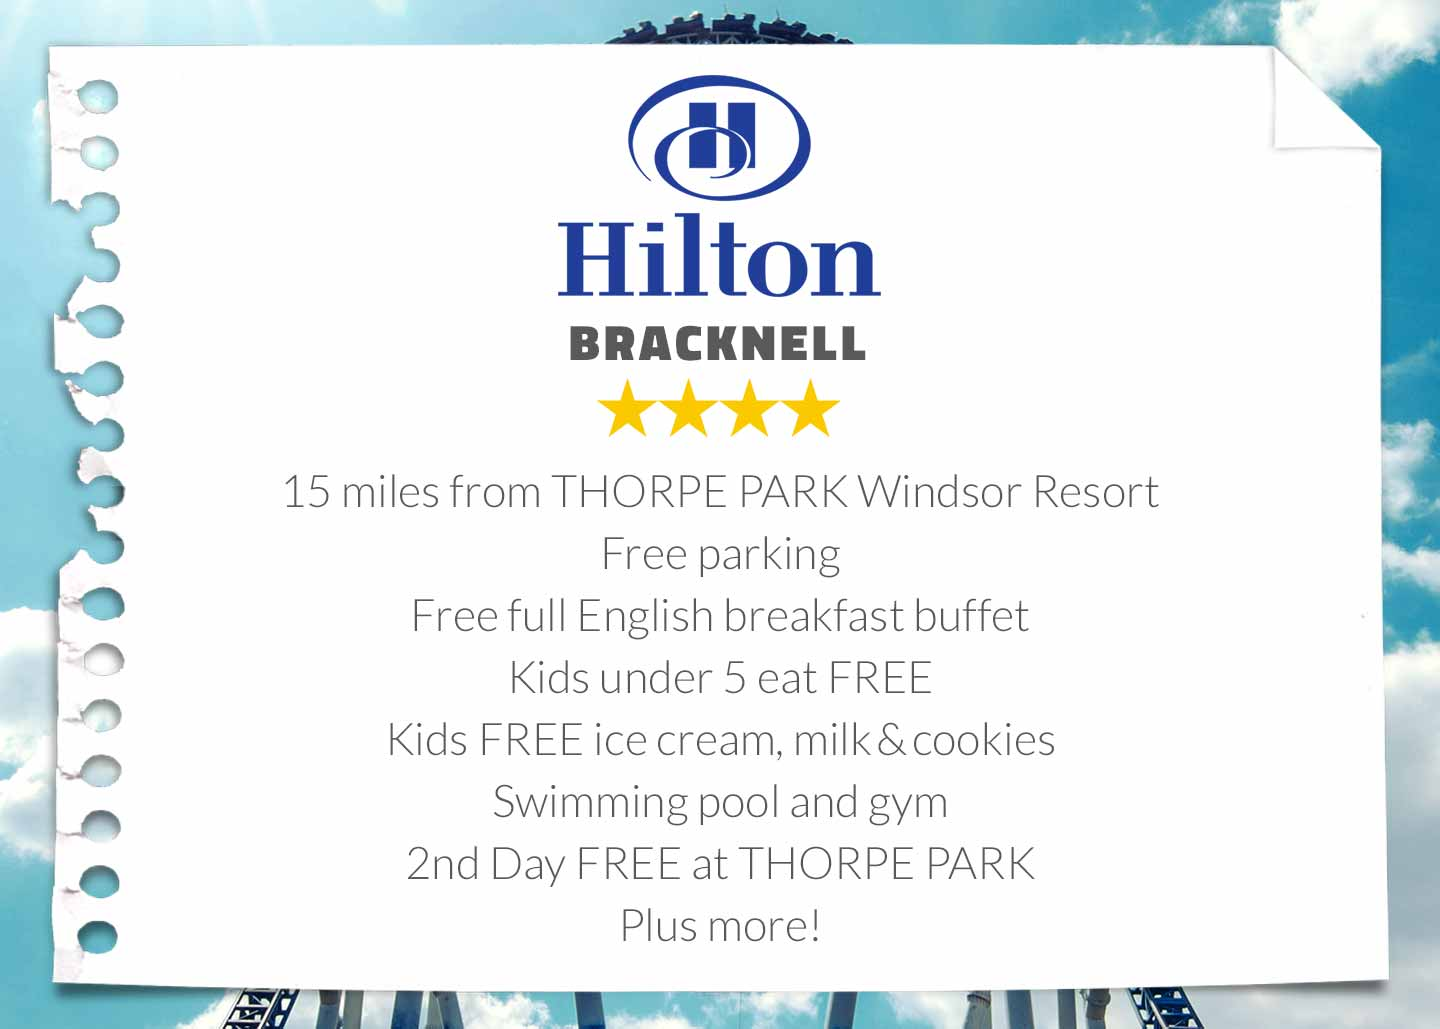 Hilton Bracknell Hotel near THORPE PARK Resort